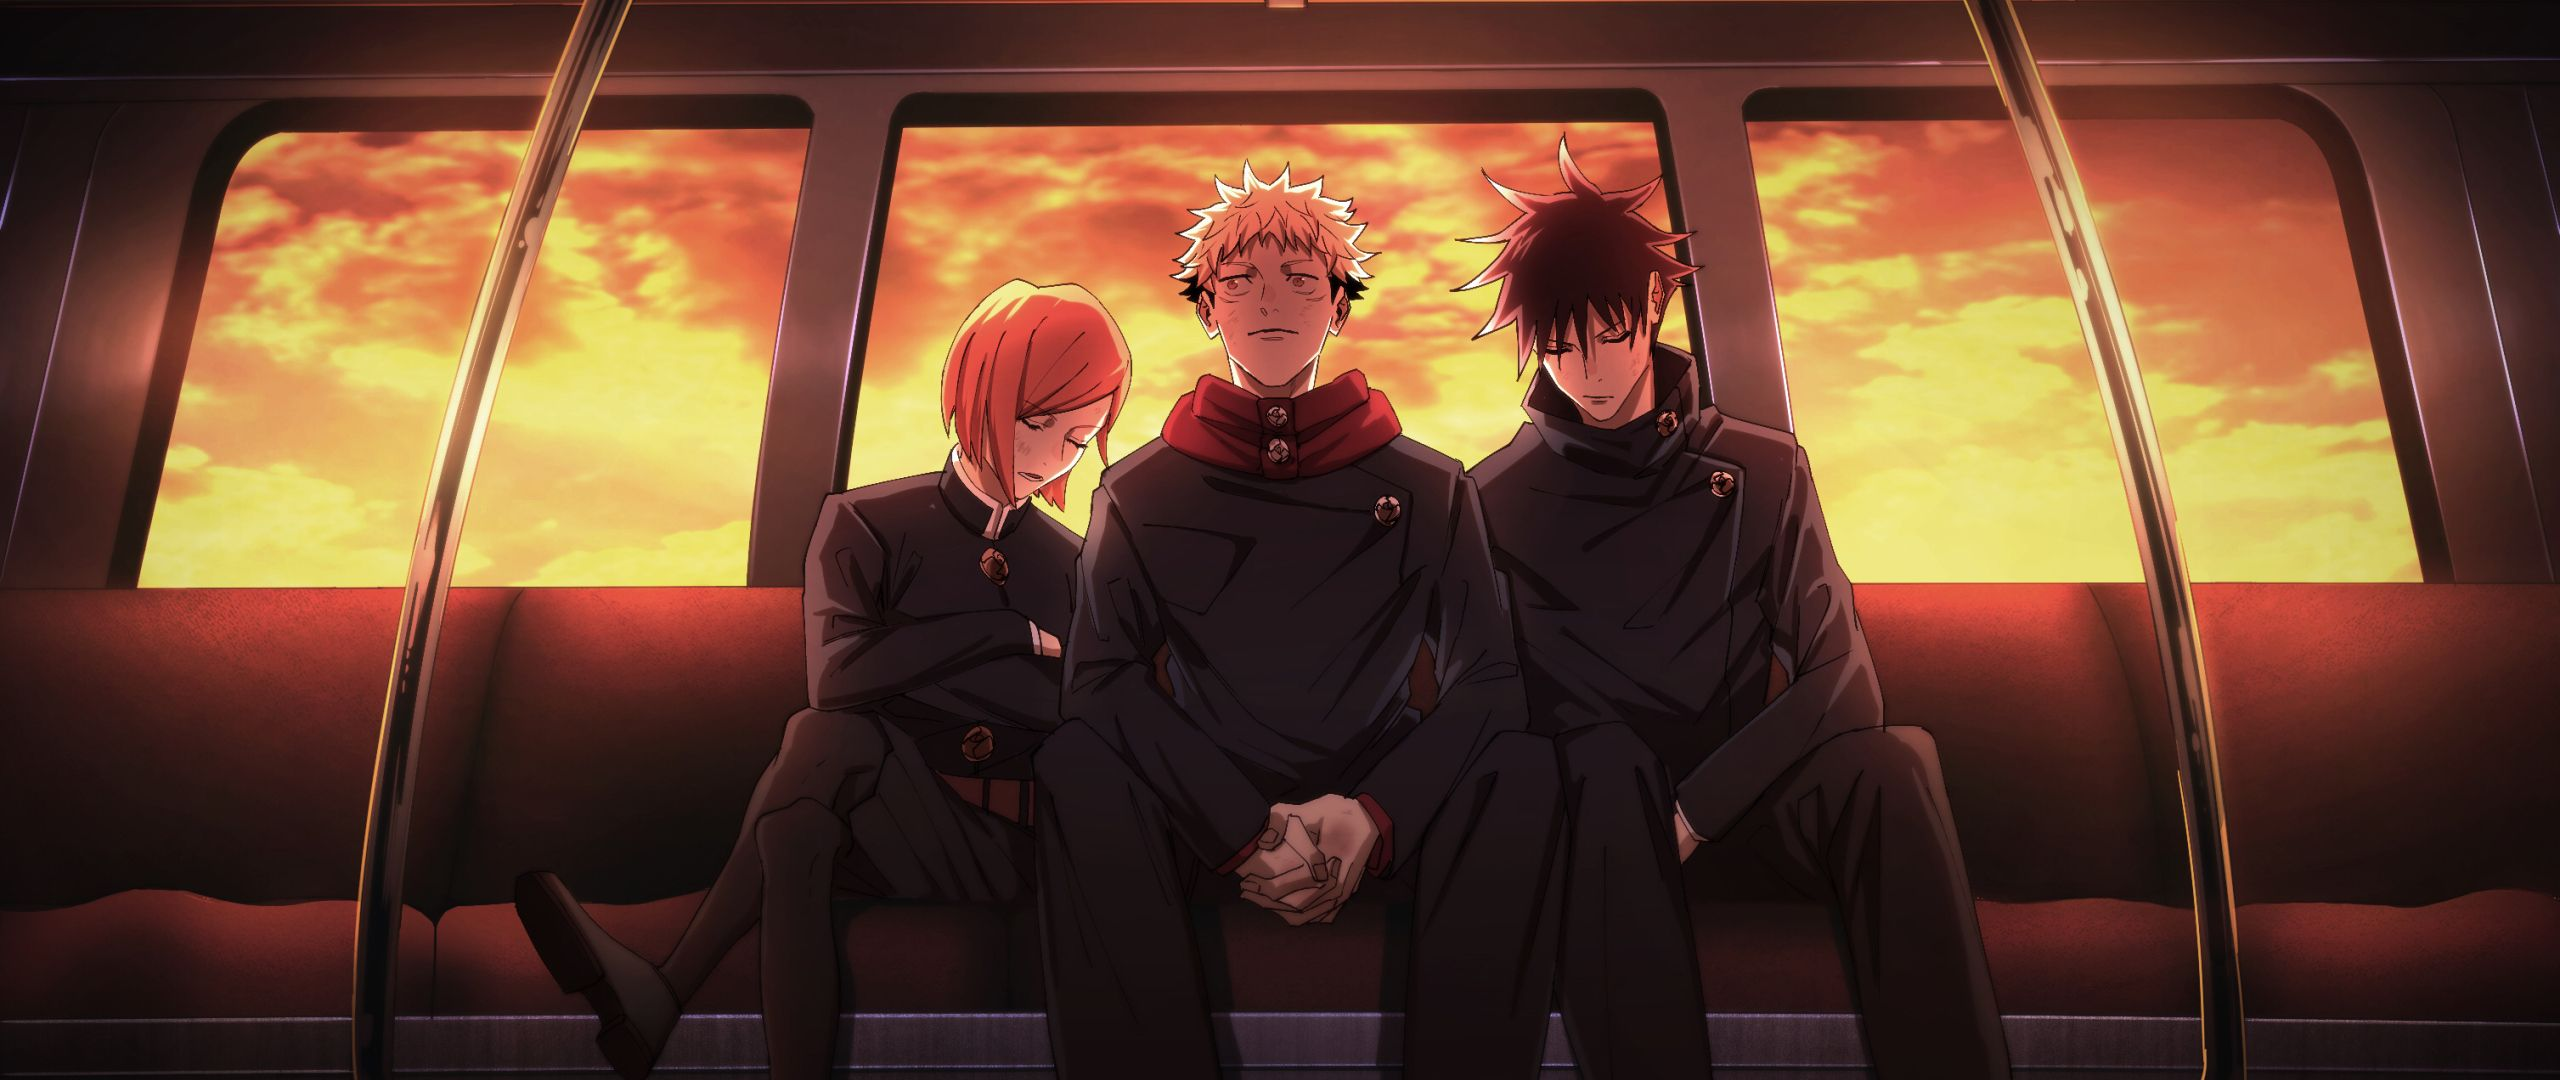 2560x1080 Jujutsu Kaisen Characters 2560x1080 Resolution Wallpaper Hd Anime 4k Wallpapers Images Photos And Background Wallpapers Den In 2021 Jujutsu Cute Anime Wallpaper Wallpaper Pc